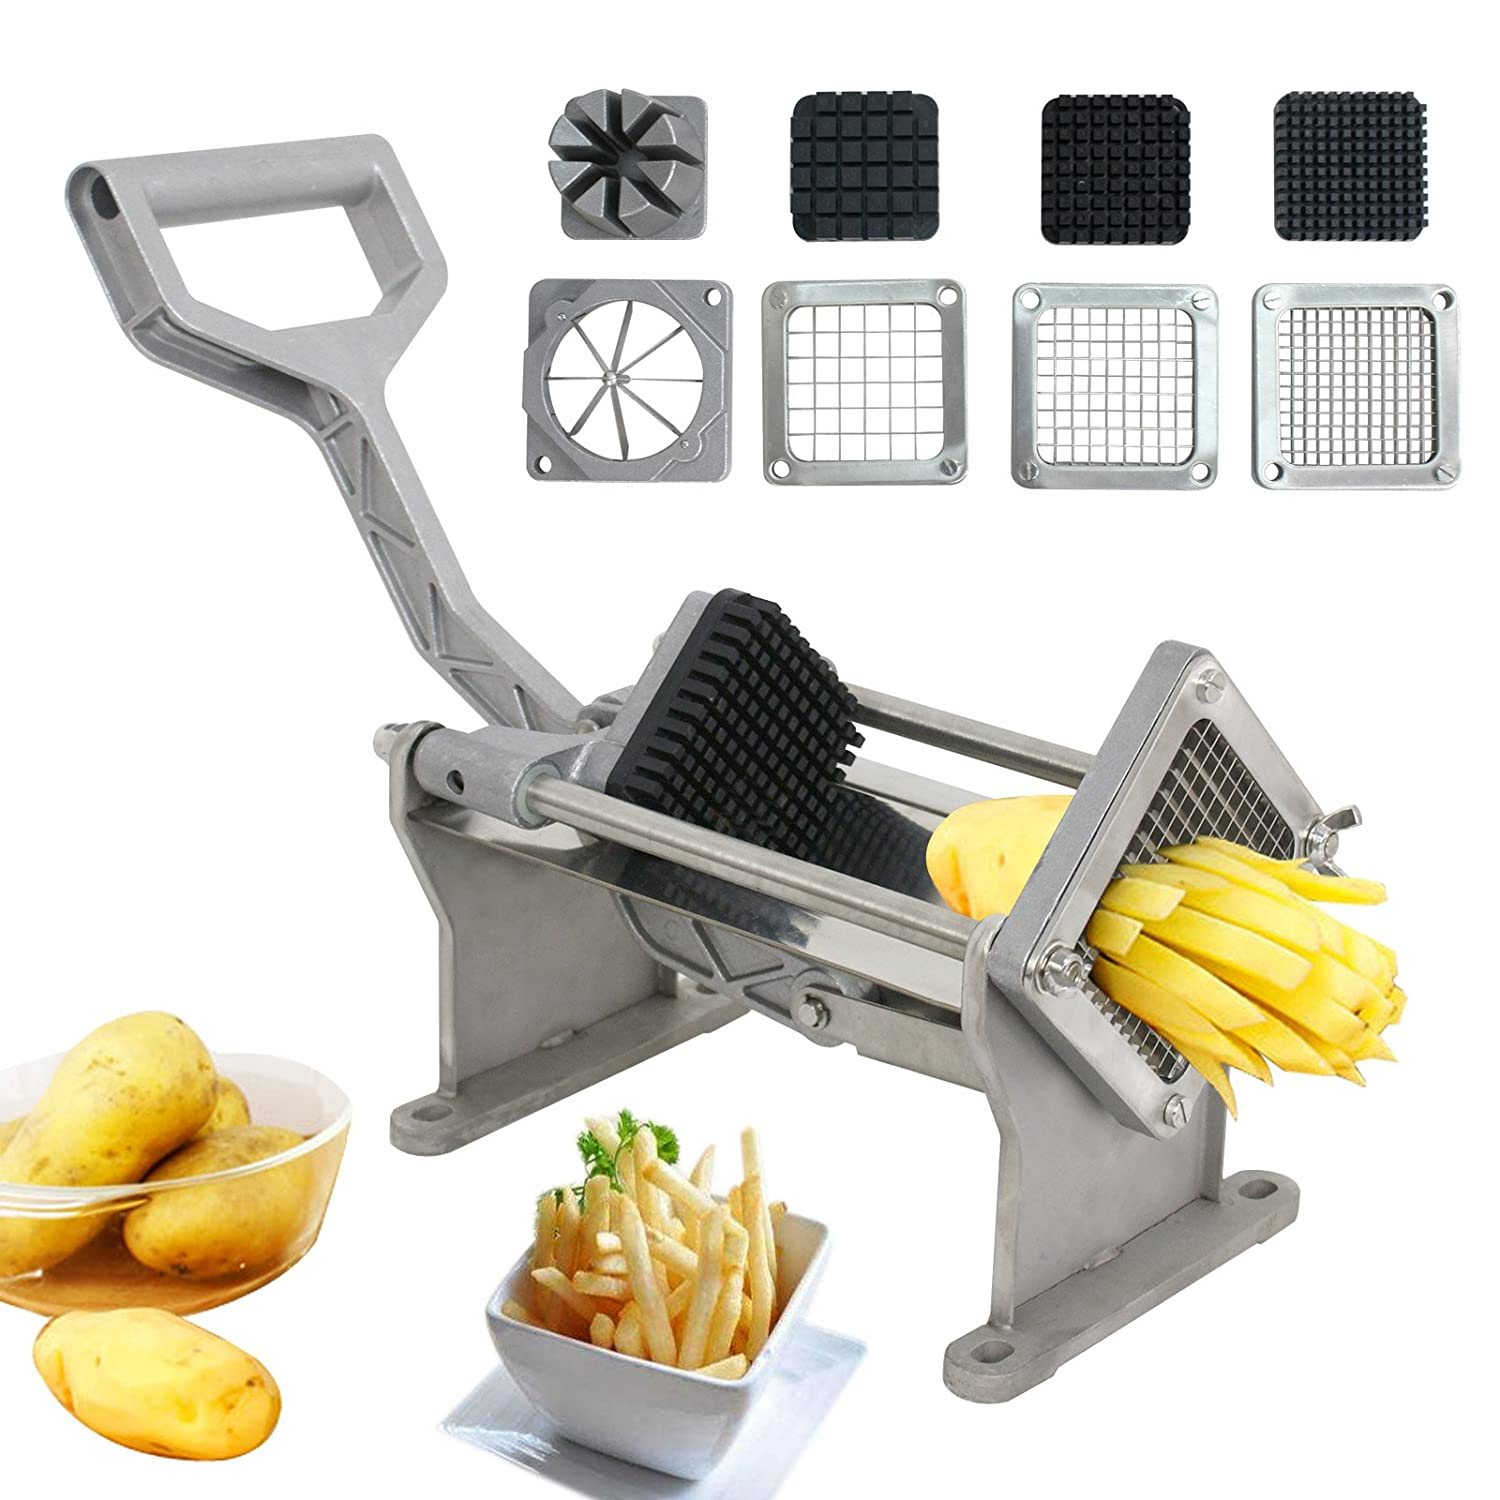 BBBUY Commercial Grade French Fry Cutter Fruit Vegetable Potato Slicer Chopper W/4 Different Size Blades